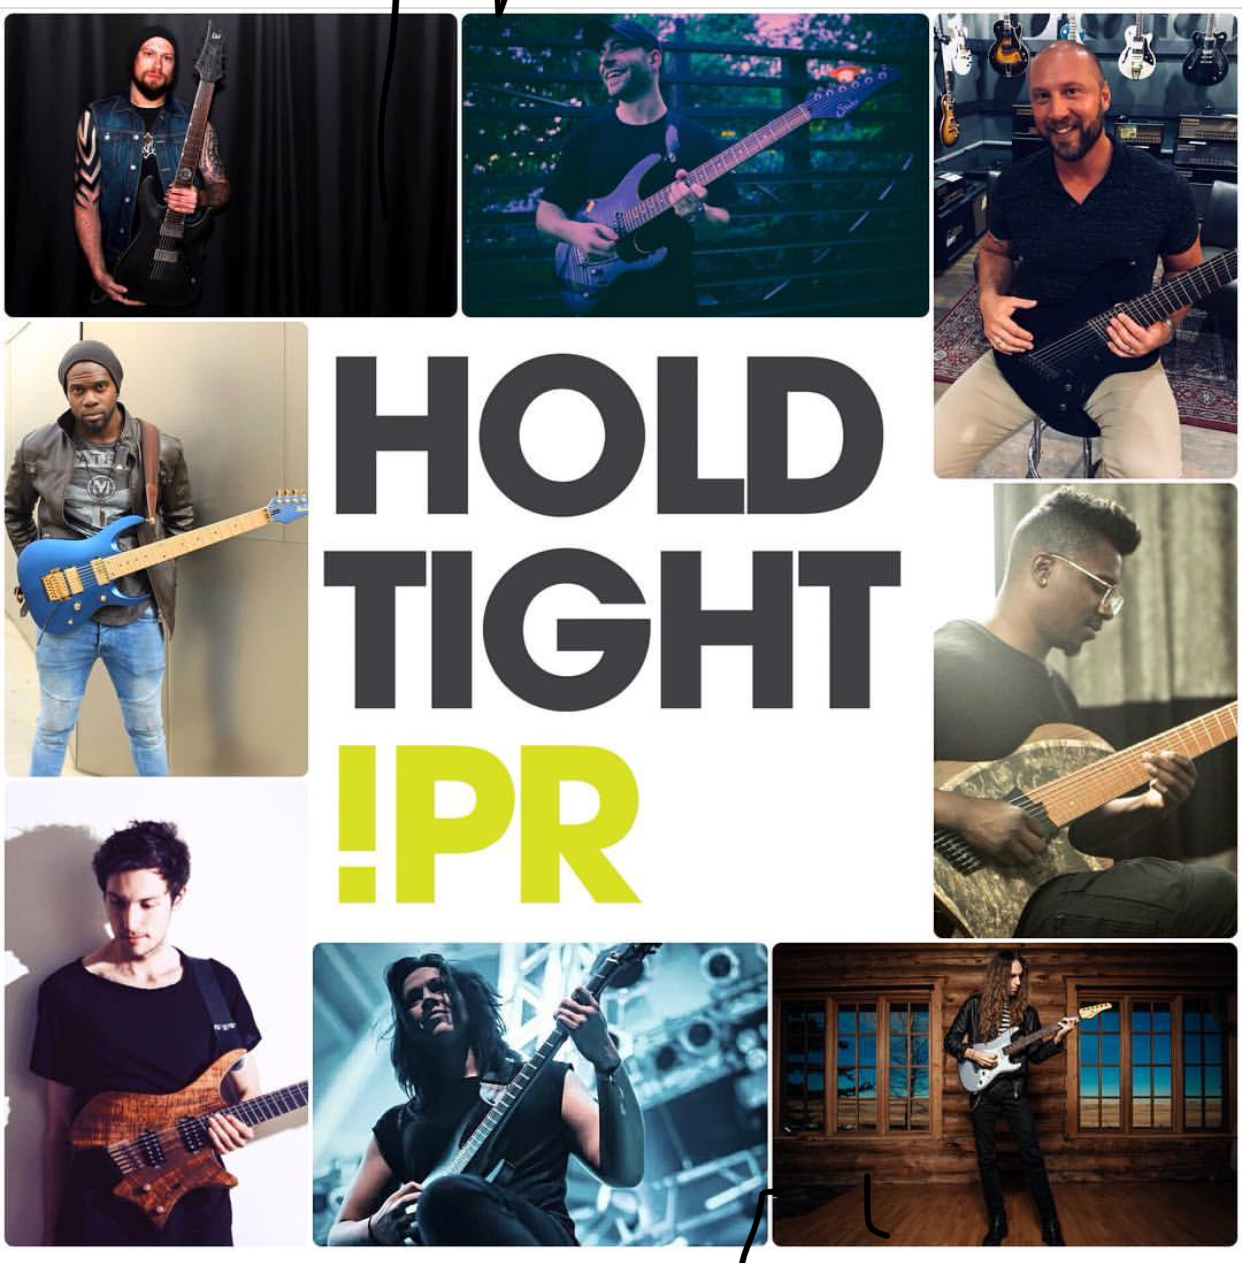 A Collage of just a few Guitarists that Hold Tight PR promotes! - Andy James, Aaron Marshall (Intervals), Chris Schiermann, Tosin Abasi (Animals as Leaders), Nick Johnston, Leah Woodward, Plini, Al Joseph (@hyvmine)